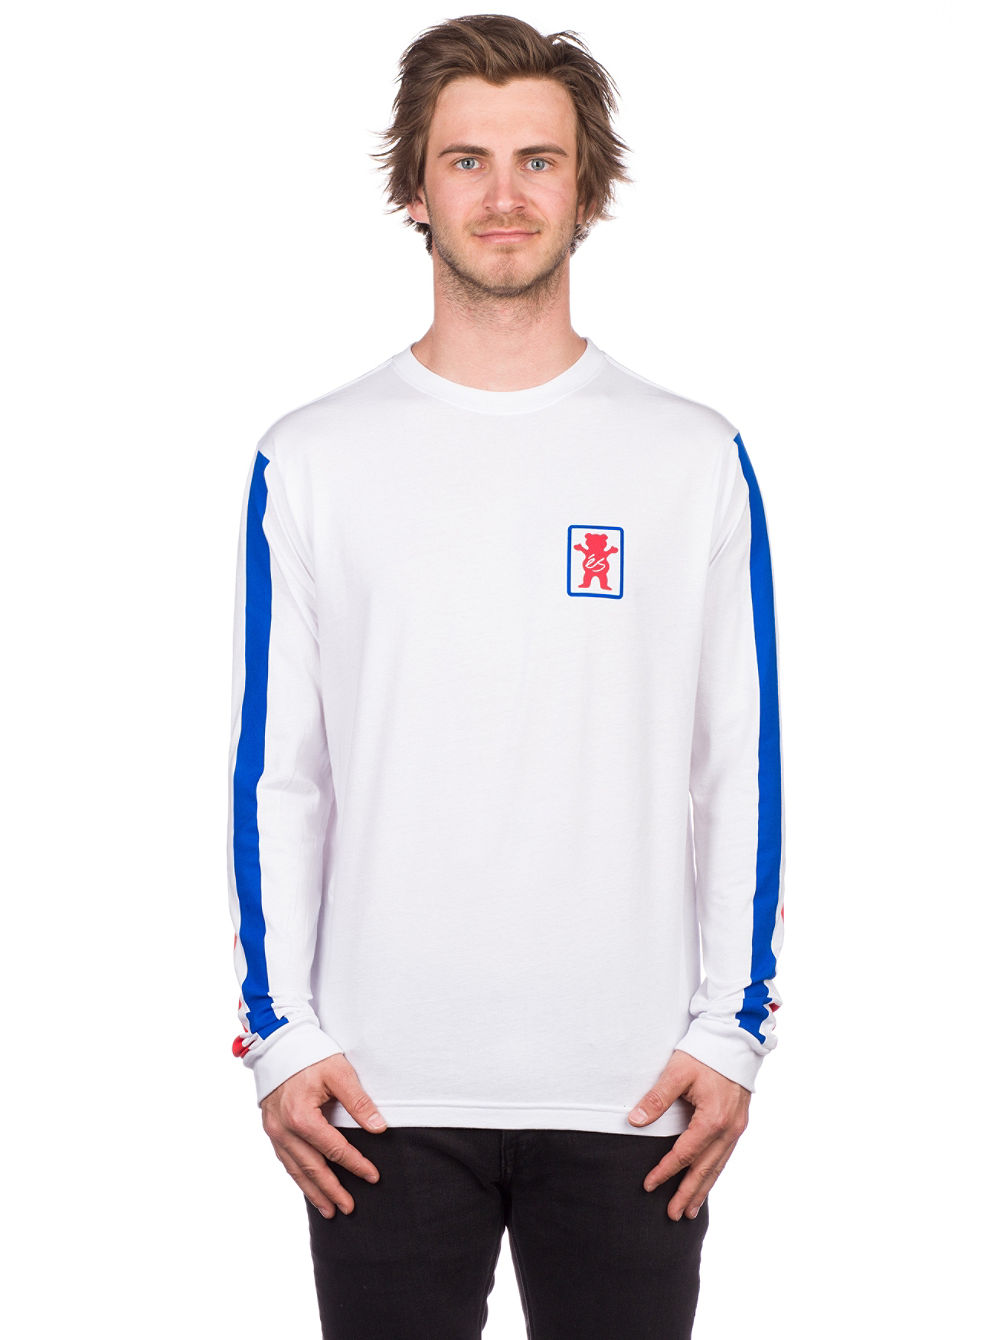 X Grizzly Racquet T-Shirt LS